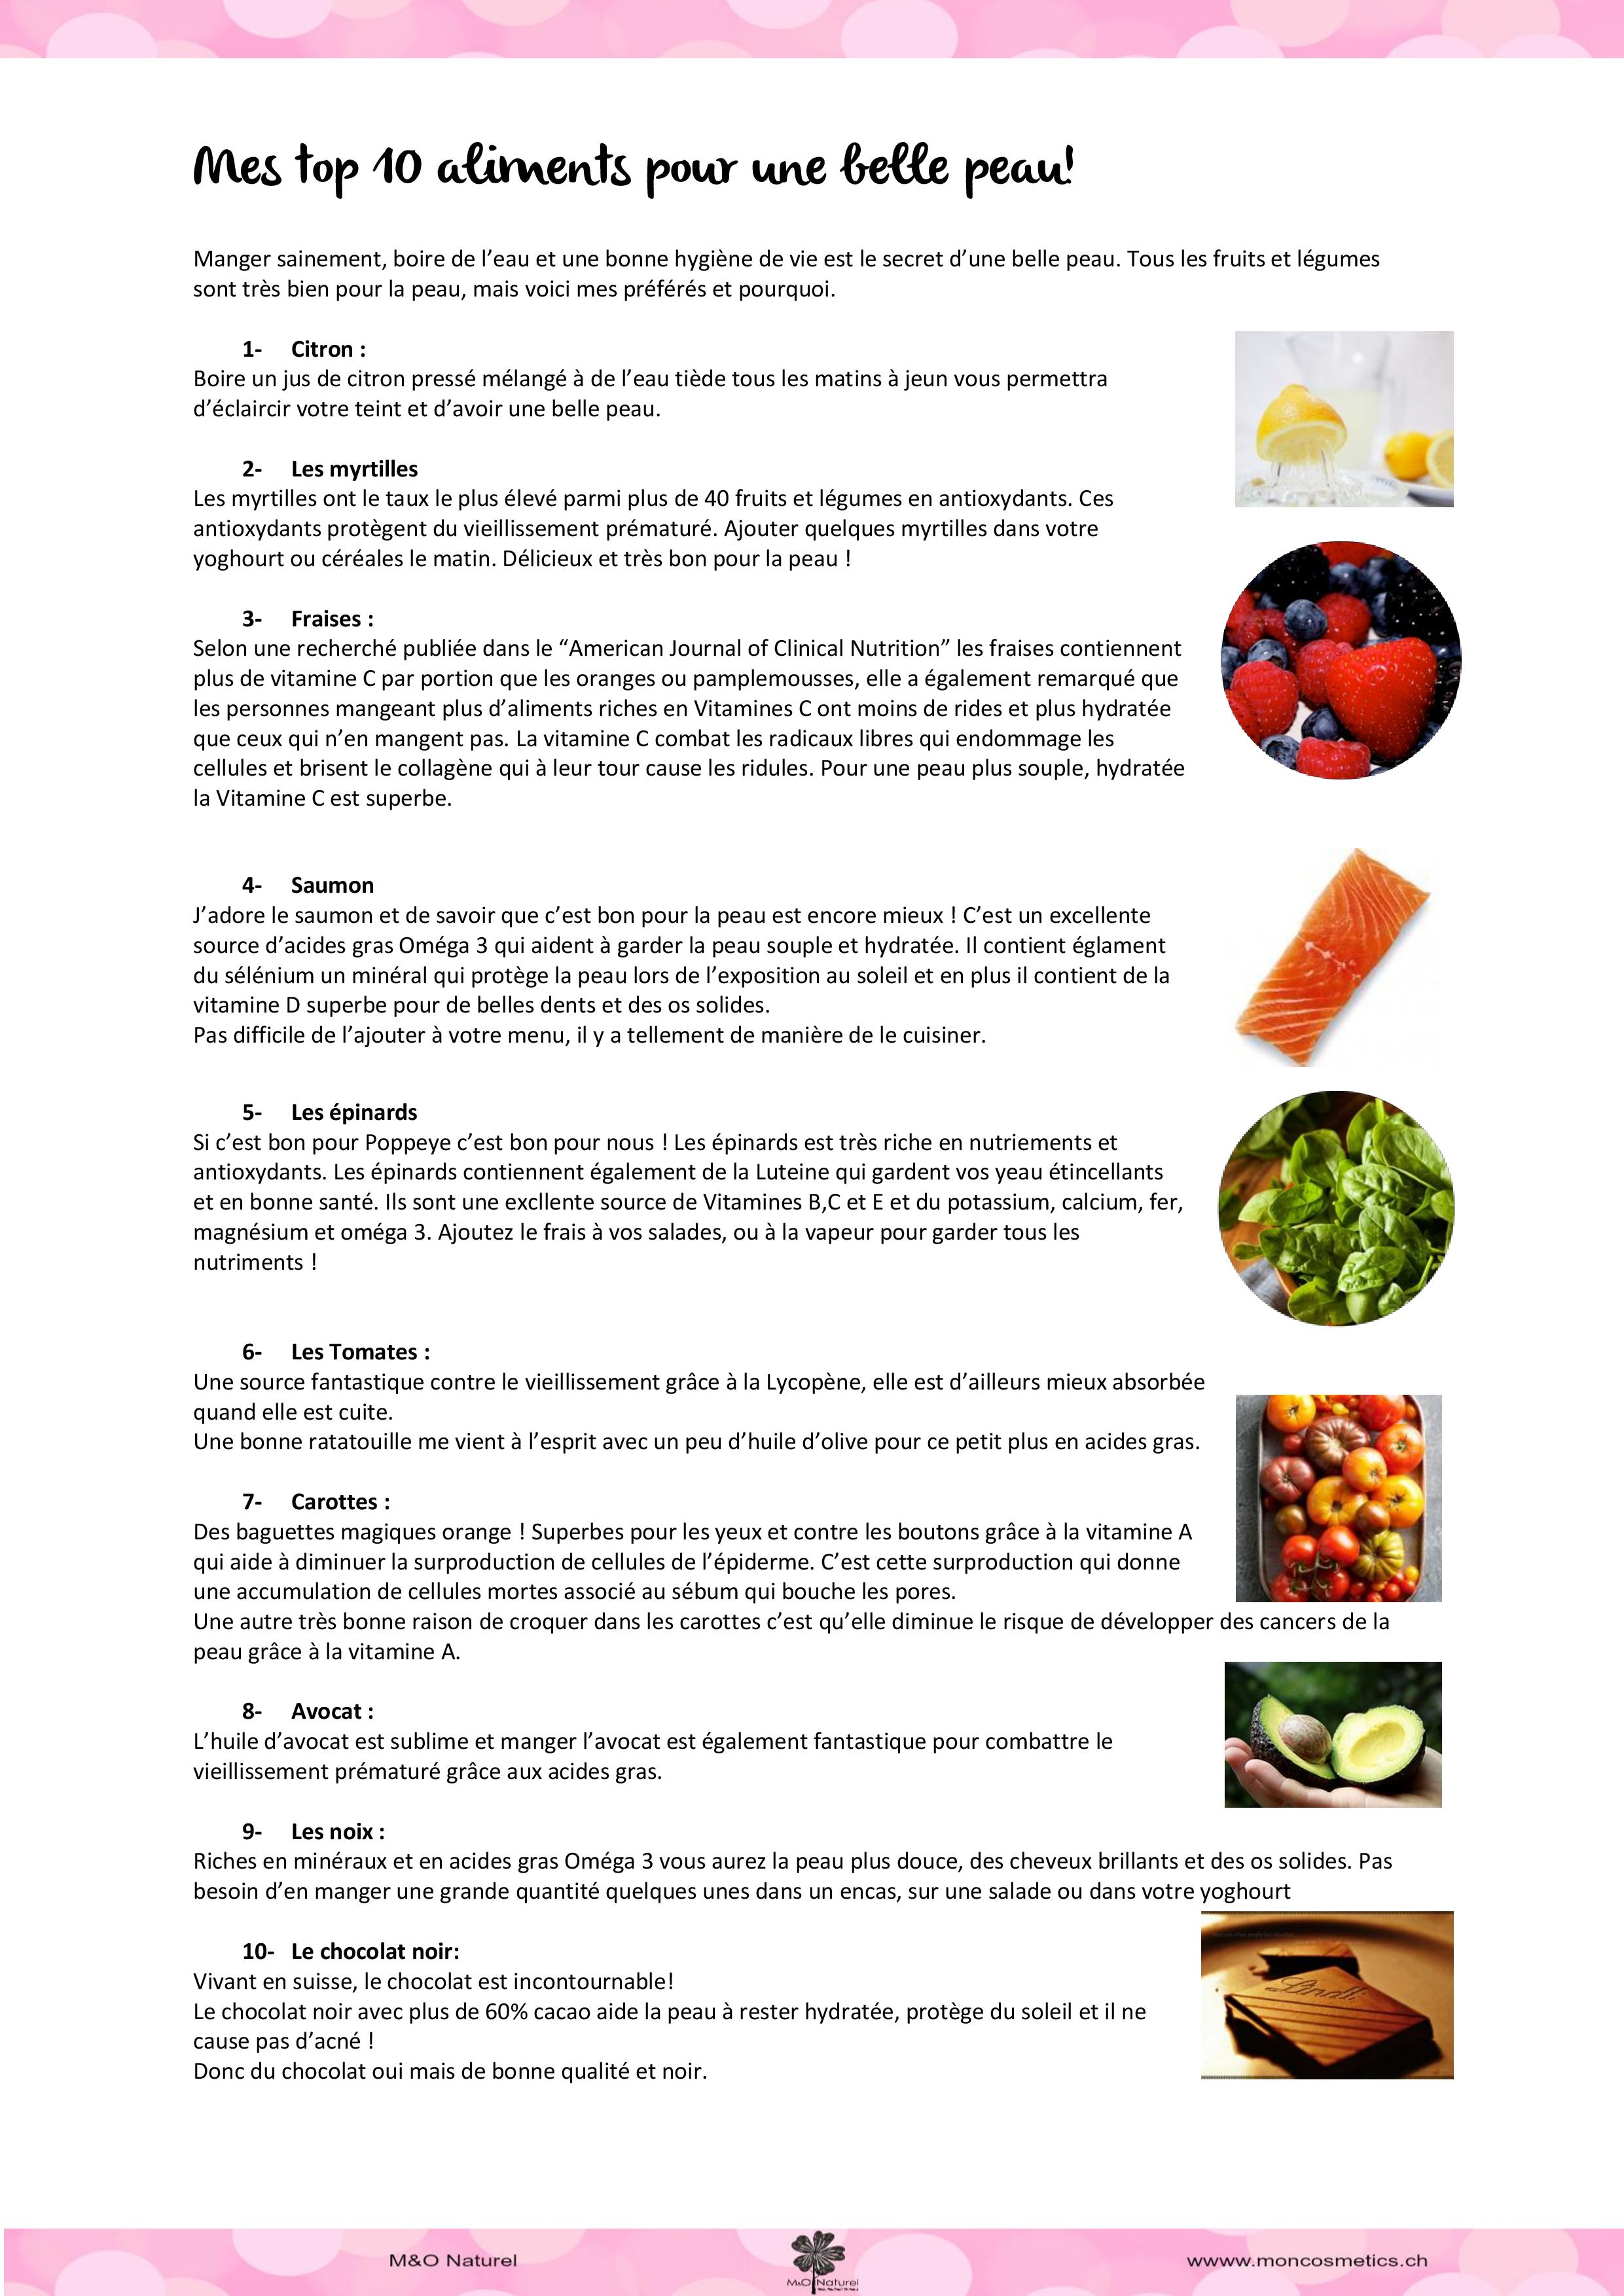 top 10 foods for healthy skin-page-001